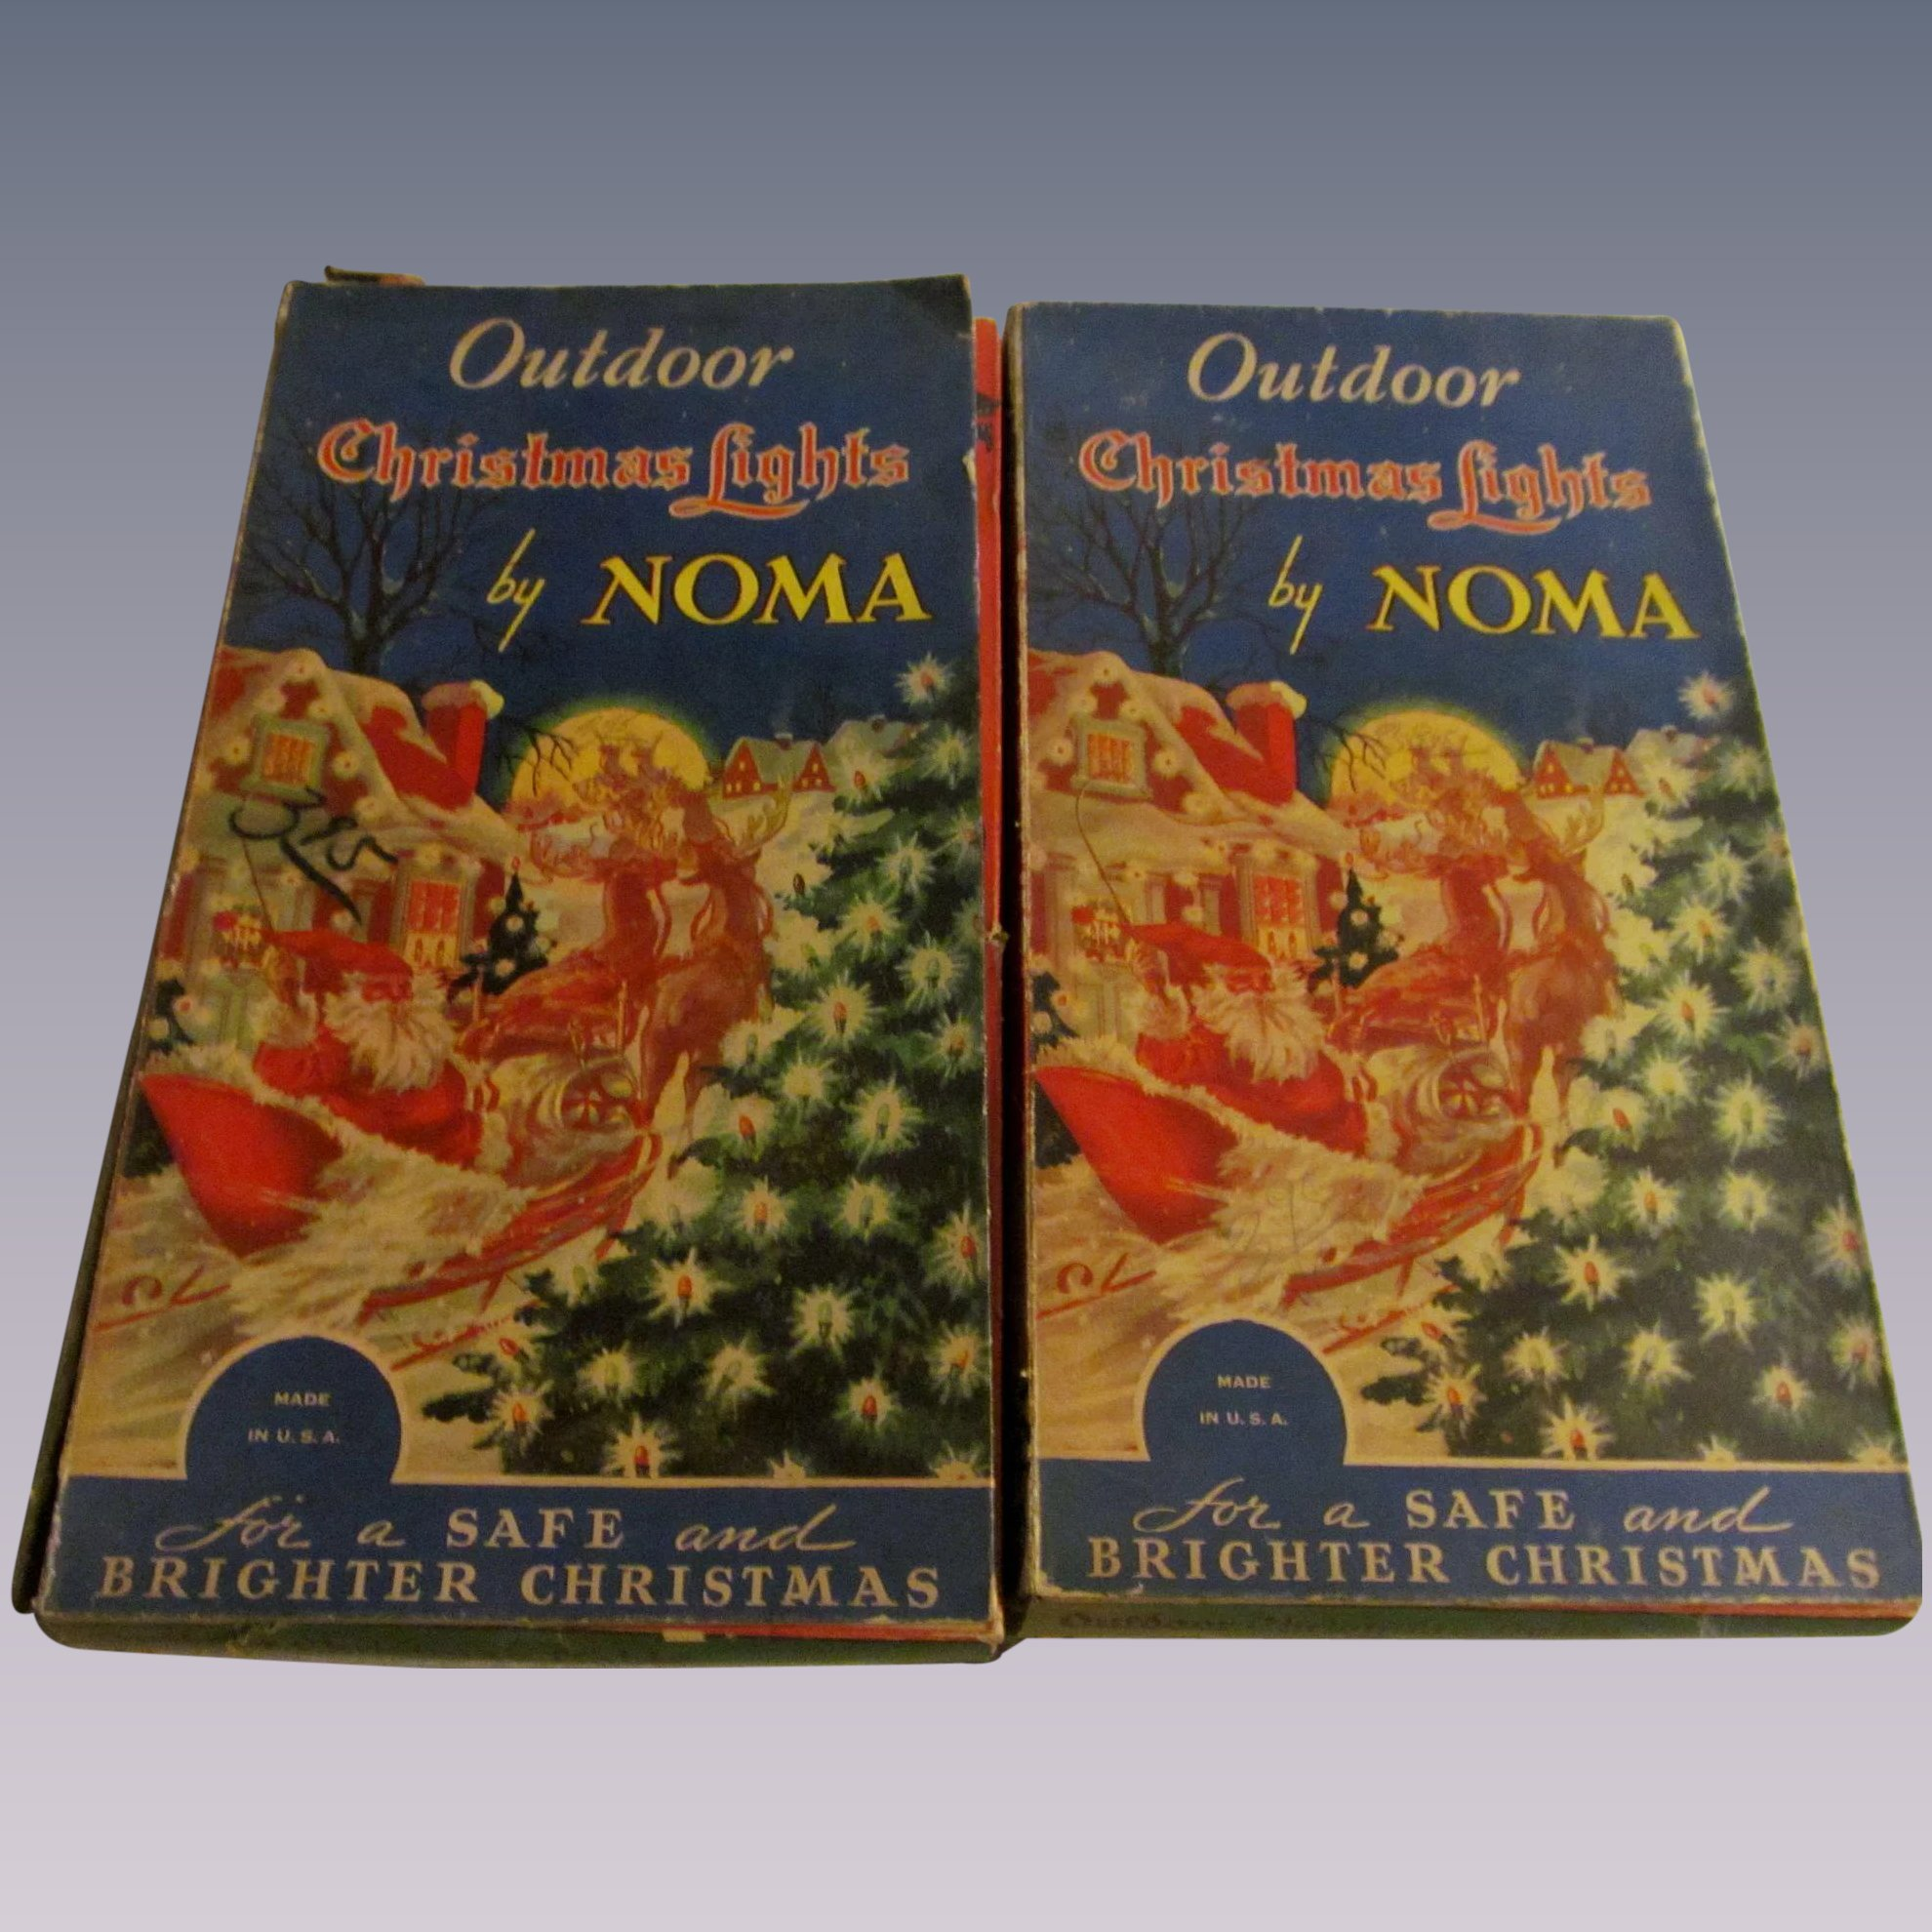 Noma Christmas Outdoor Lights, 2 Boxes, Flame Bulbs, Tested, 4 Extra ...